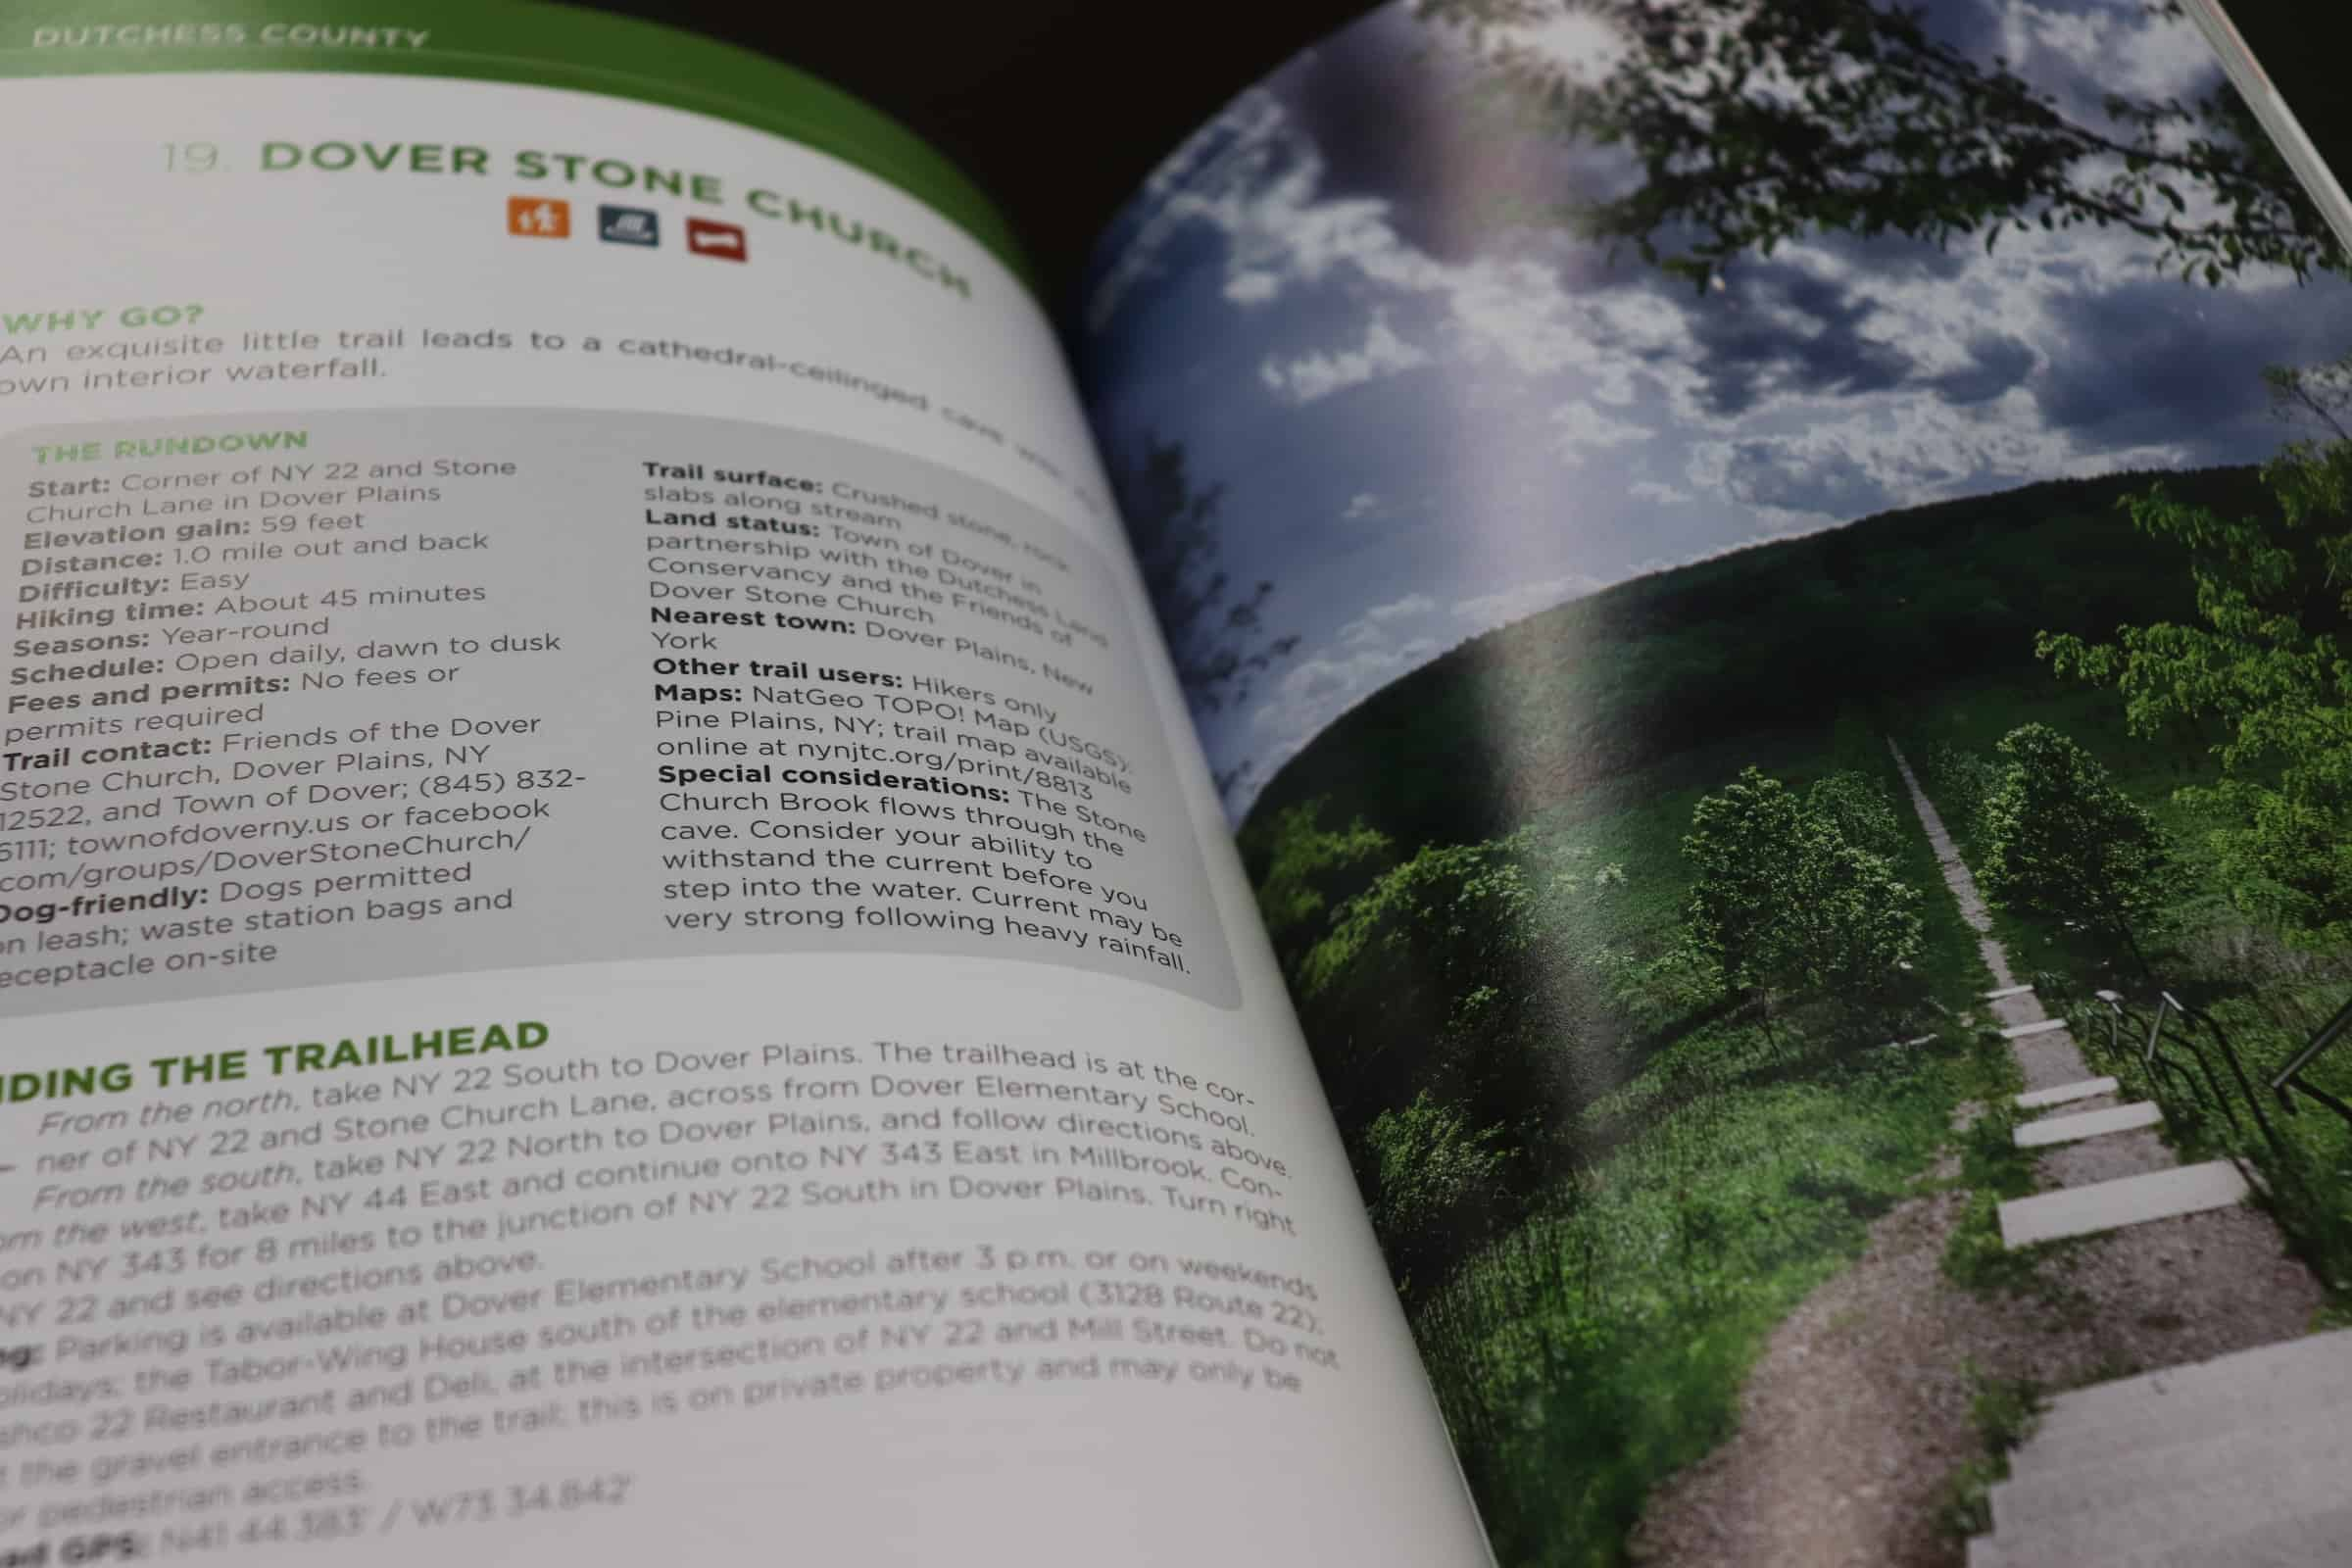 A page in Hiking New York's Lower Hudson Valley by Randi Minetor